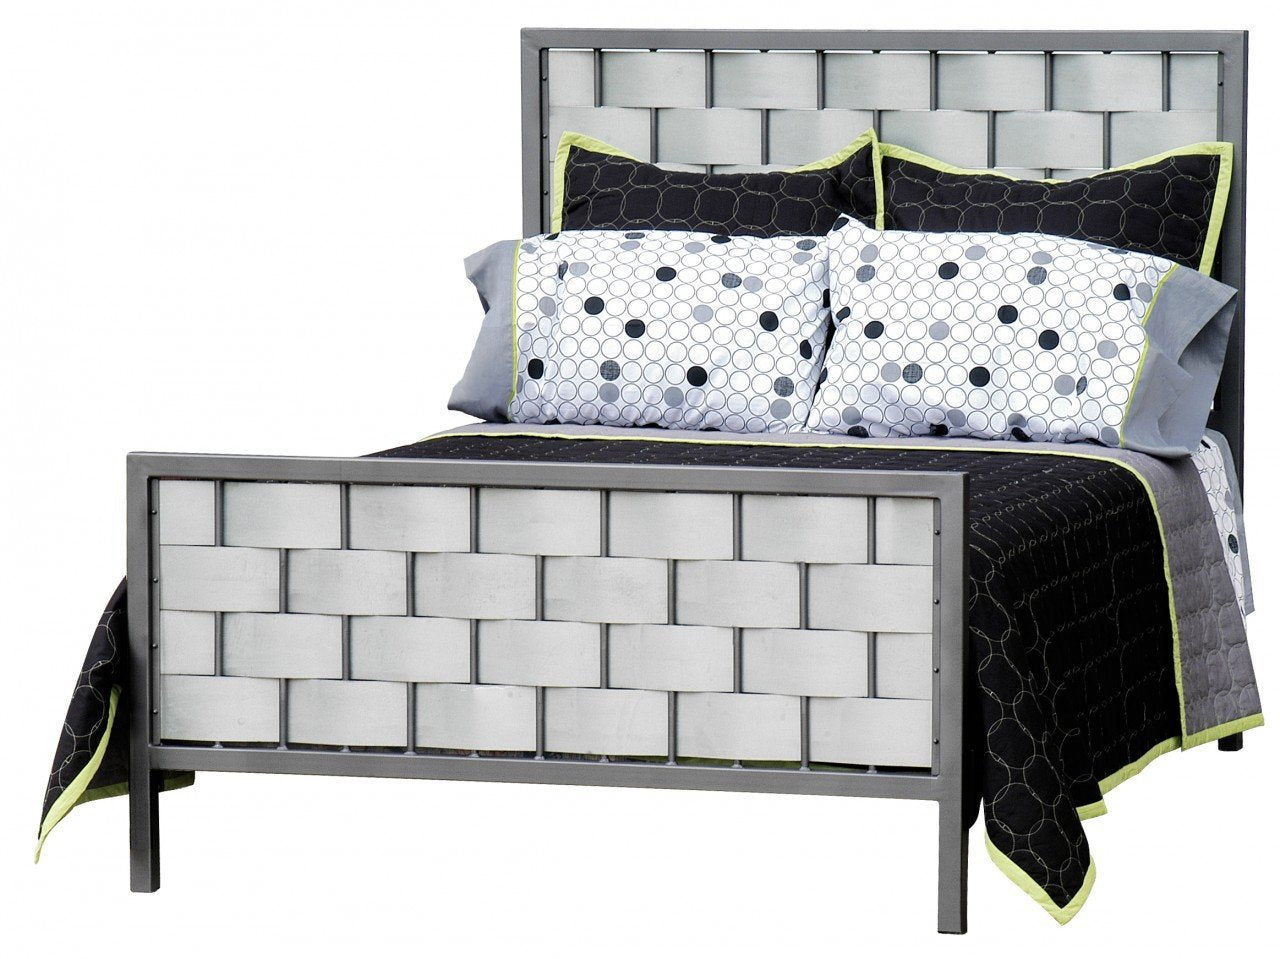 California King Iron Bed Galvanized Rushton - Stone County Bed Image